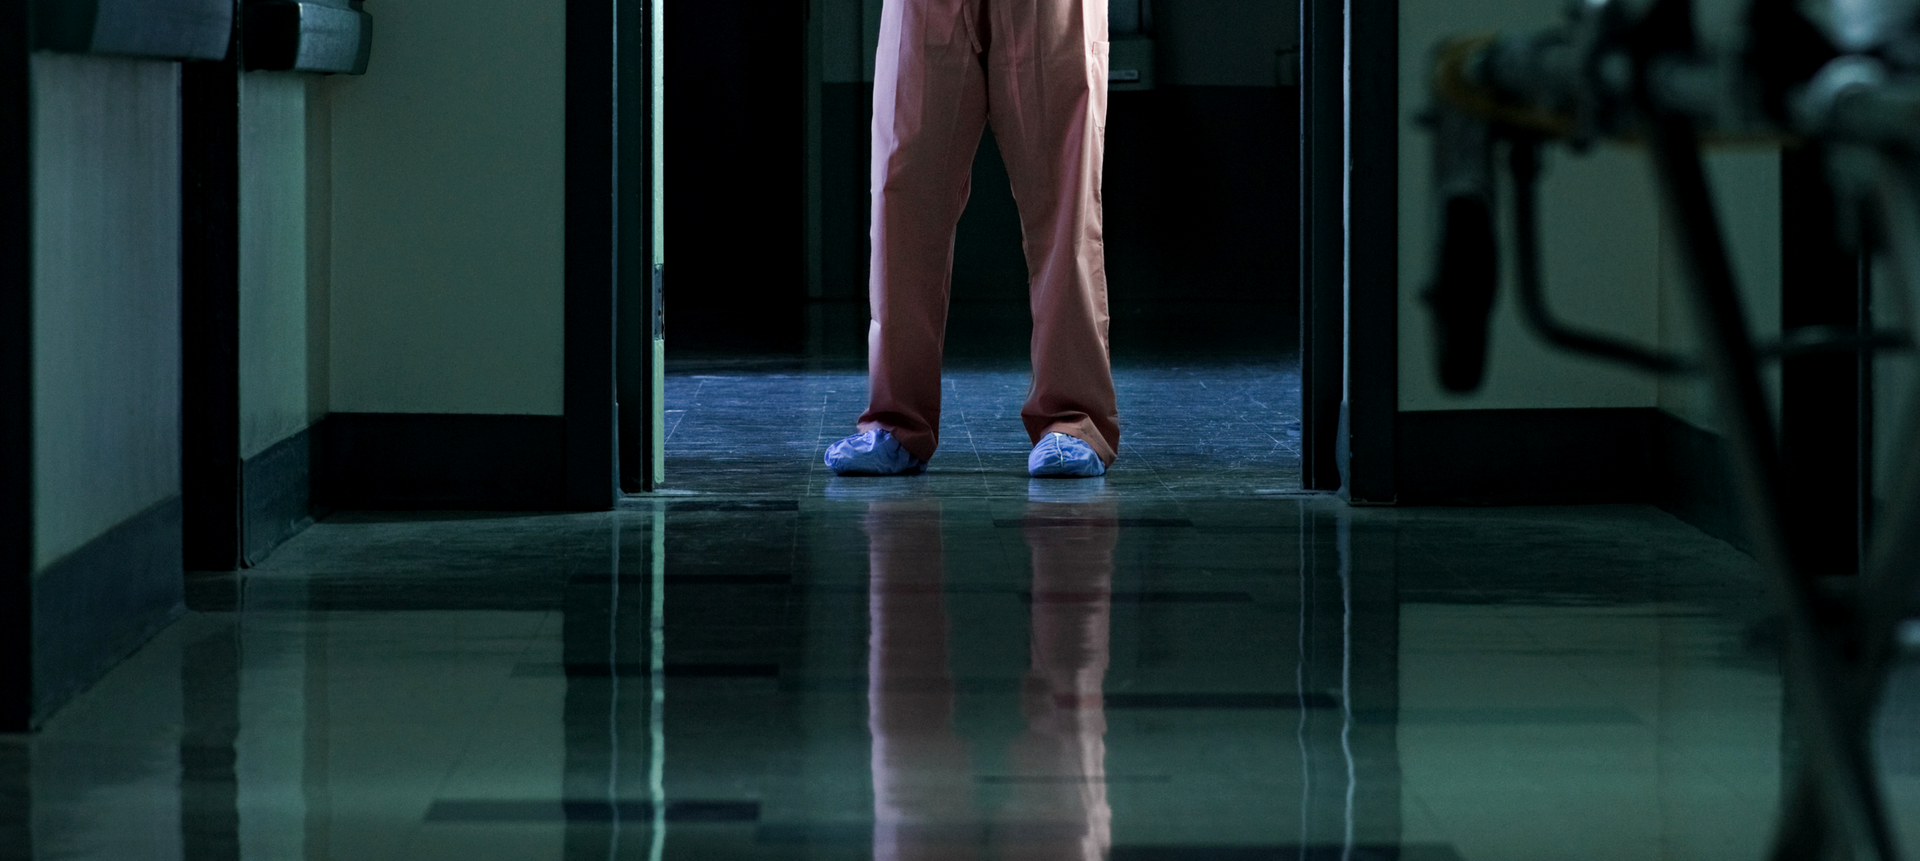 Soft, instrumental music   Female NURSE hurries into a hospital NICU, dimly lit by computer screens and whirring machines. She turns on a light over an incubator to reveal a tiny baby in clear distress, silently wailing.  SFX: CLICK